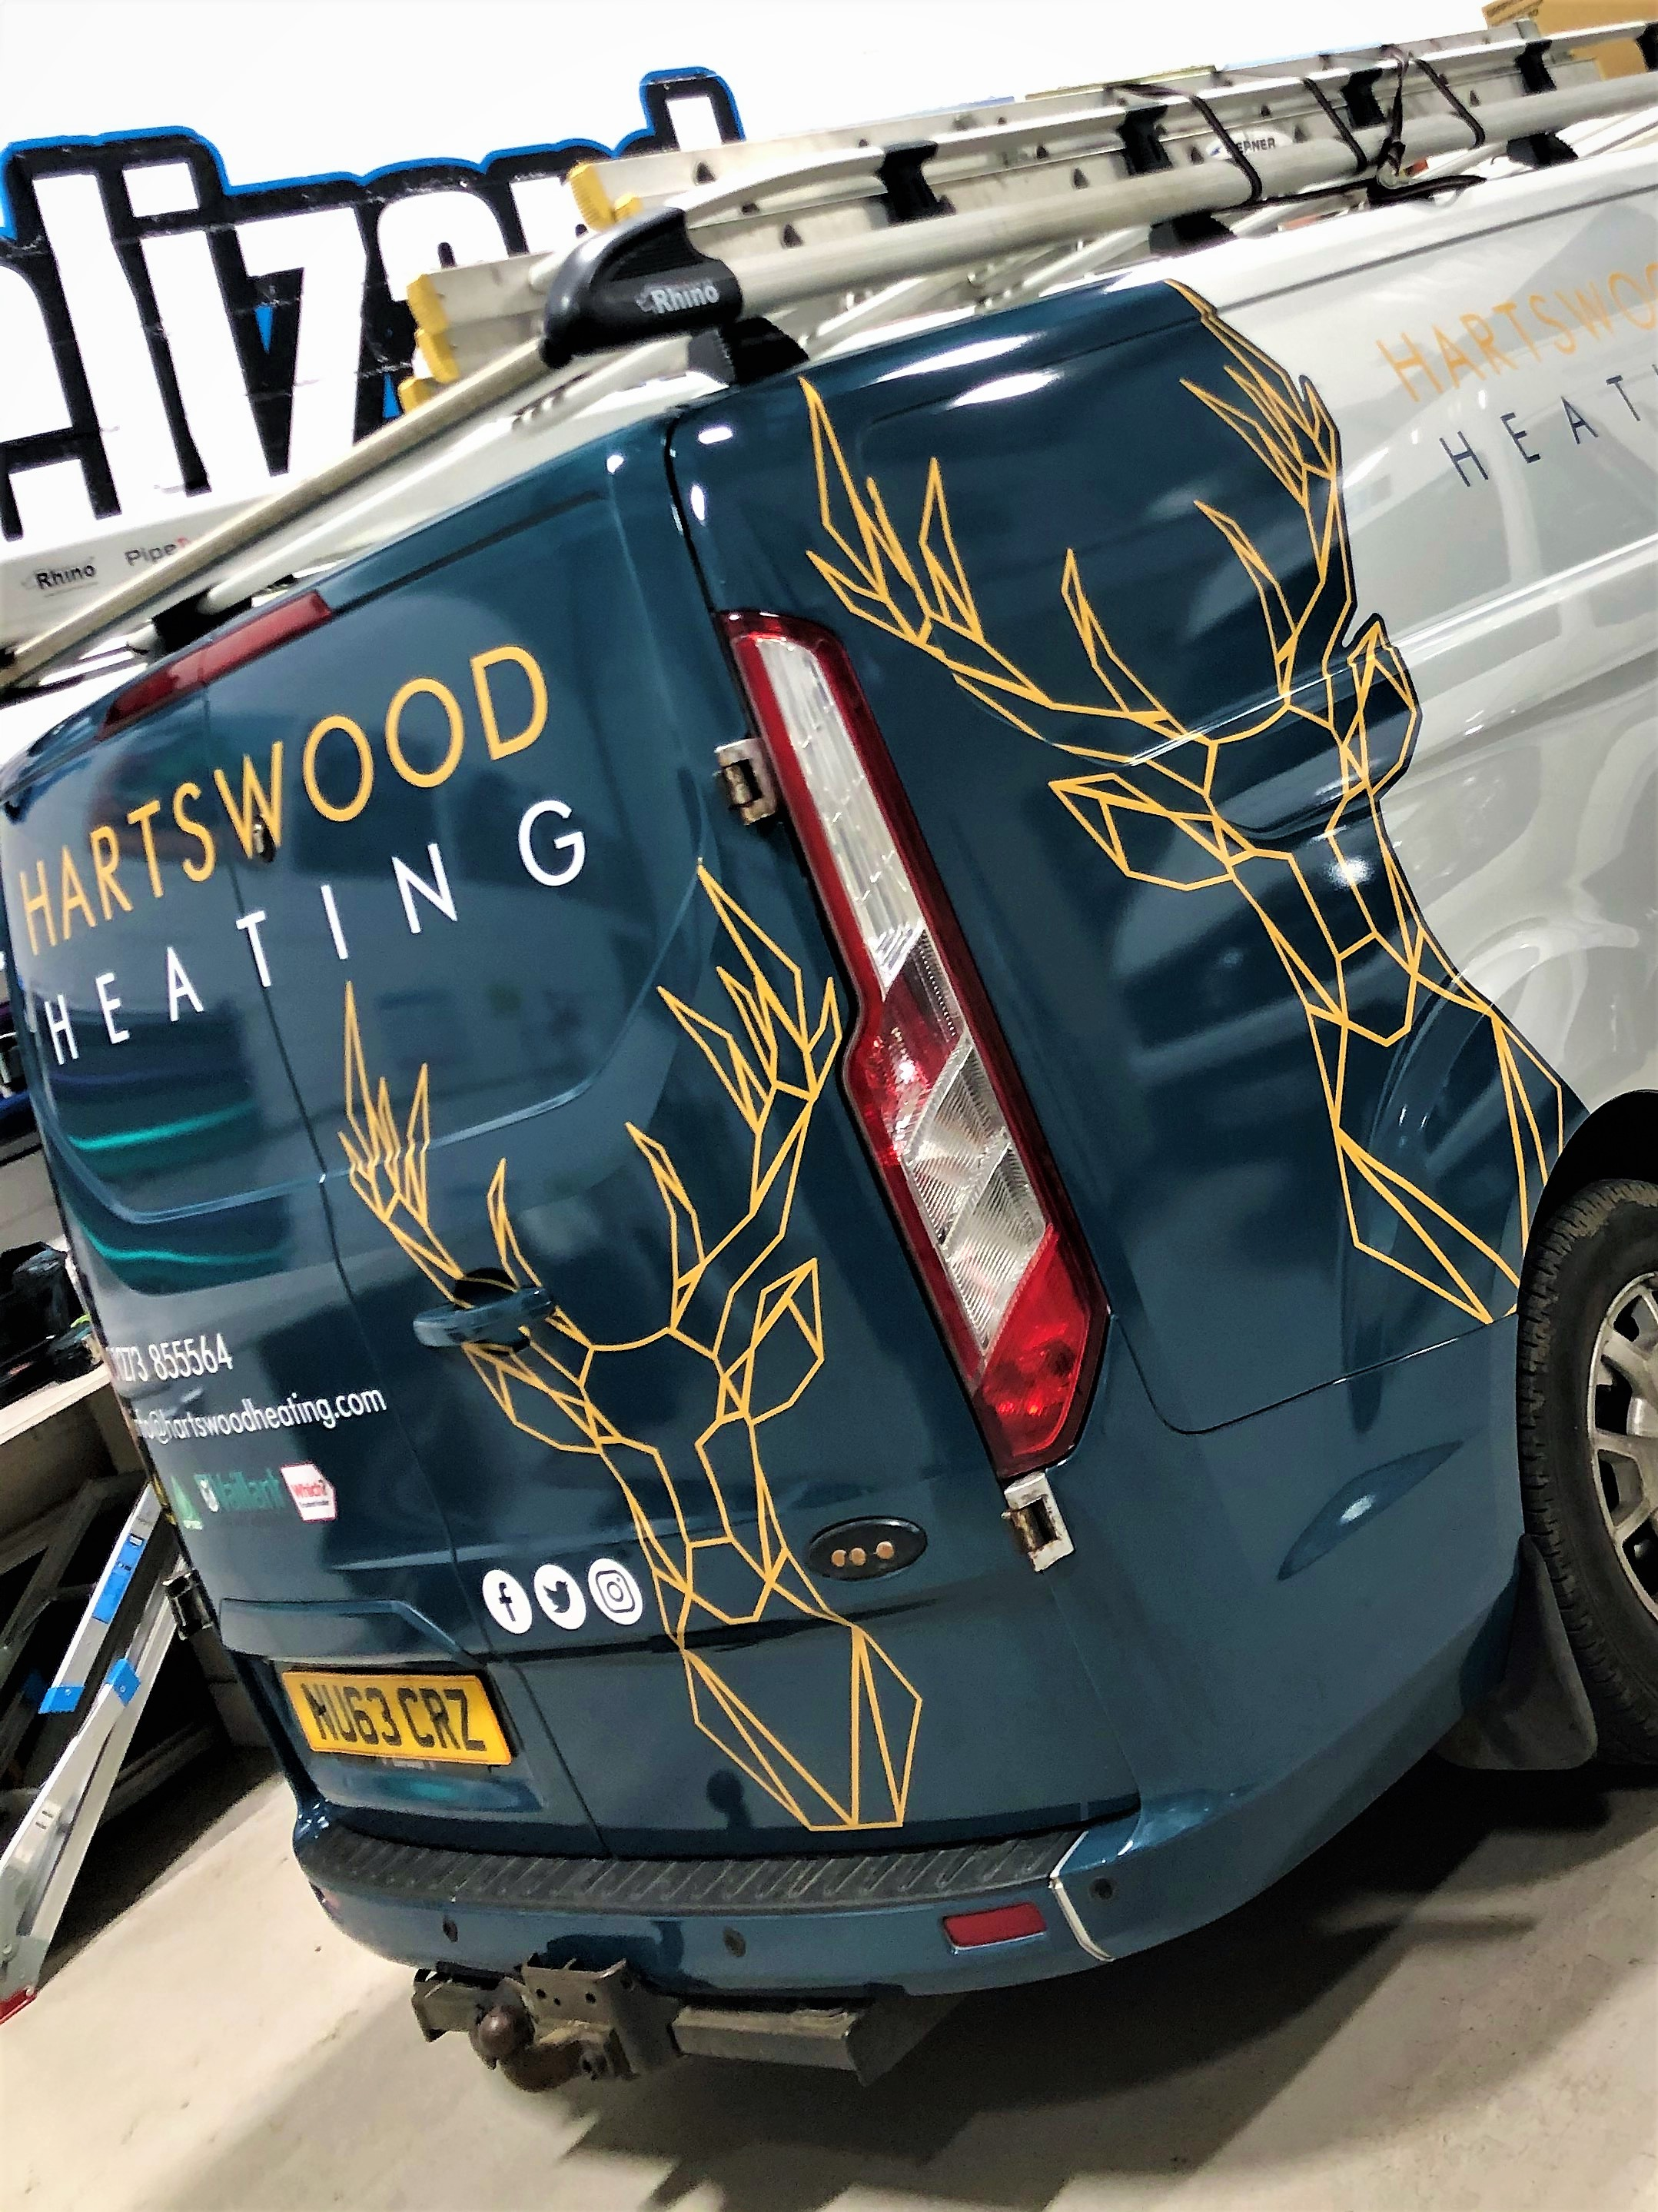 HARTSWOOD HEATING